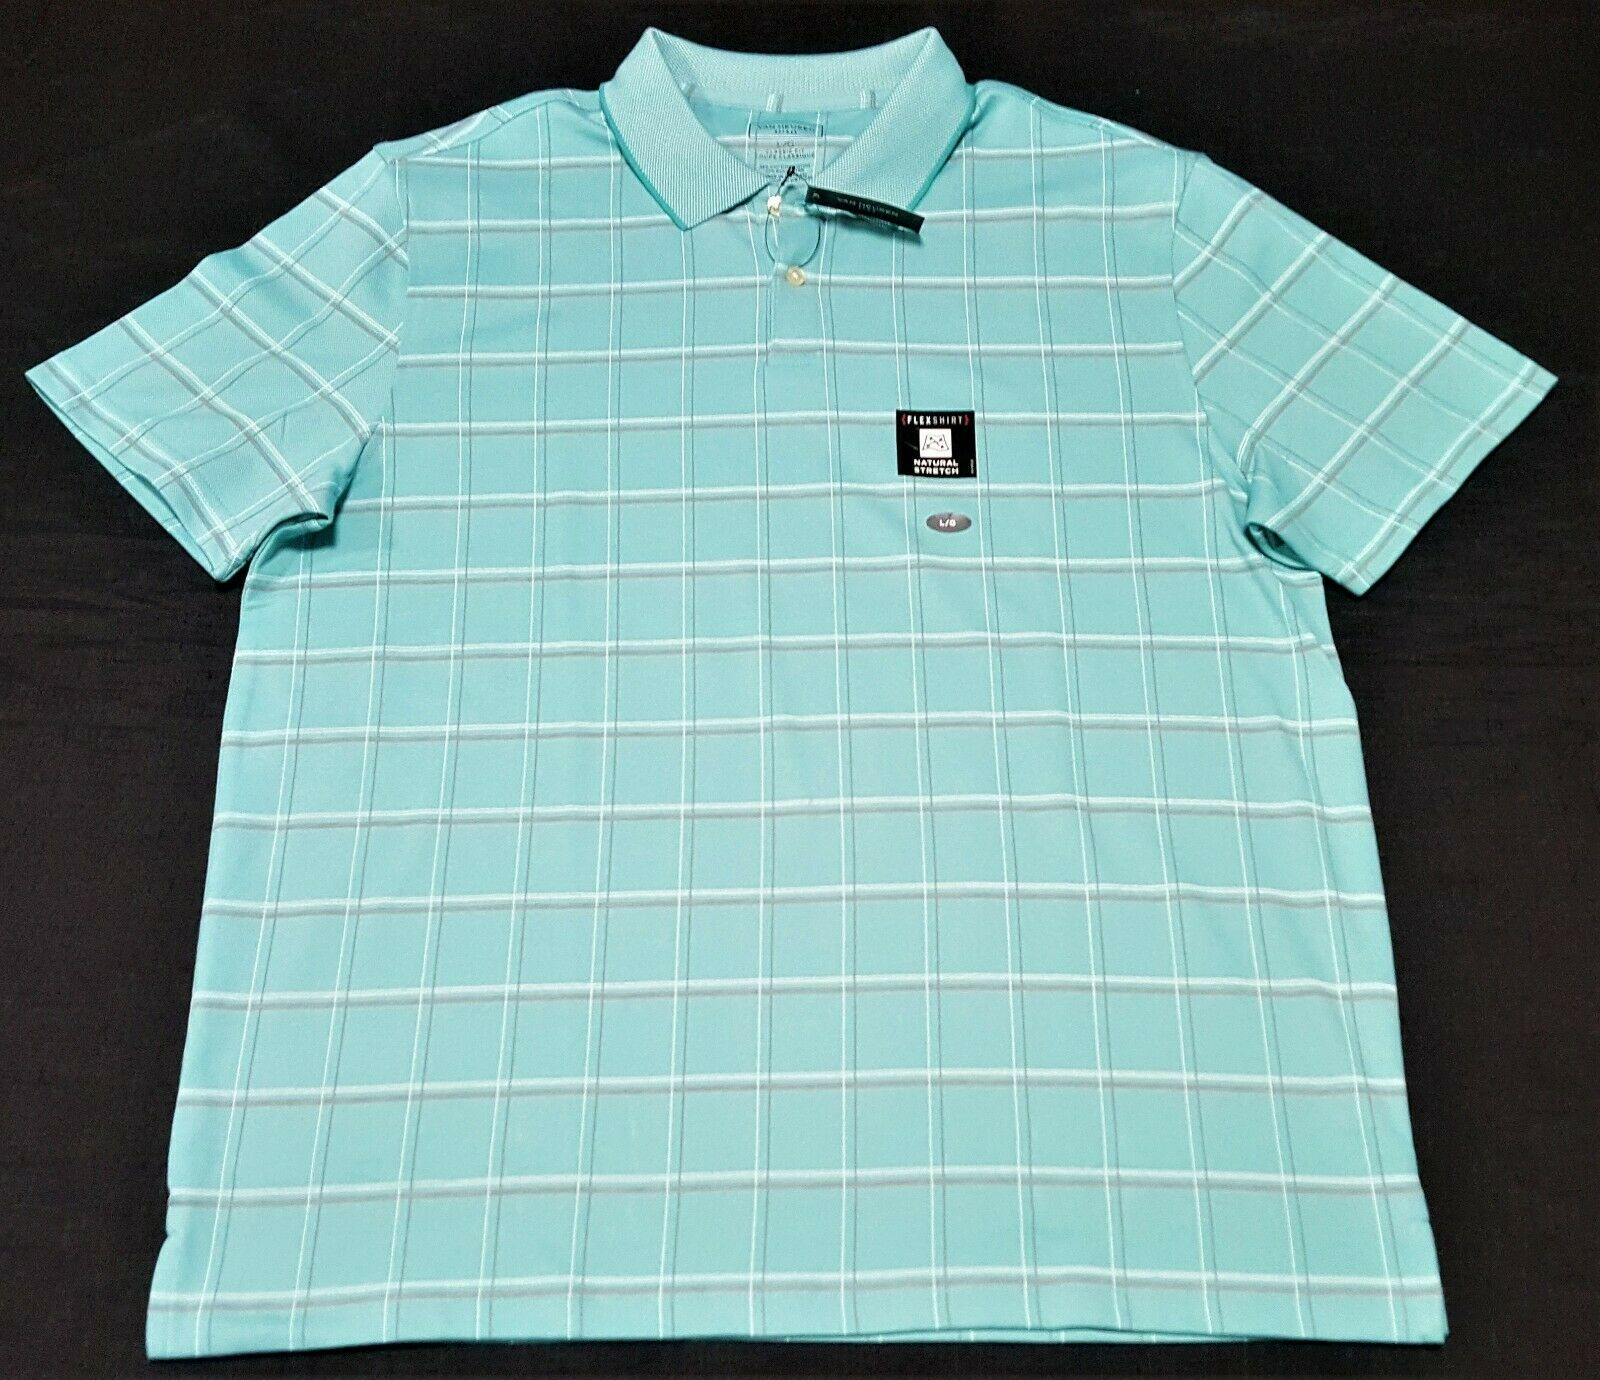 Van Heusen Men's Flex Short Sleeve  Stripe Polo Shirt, Size Large (FLEX)